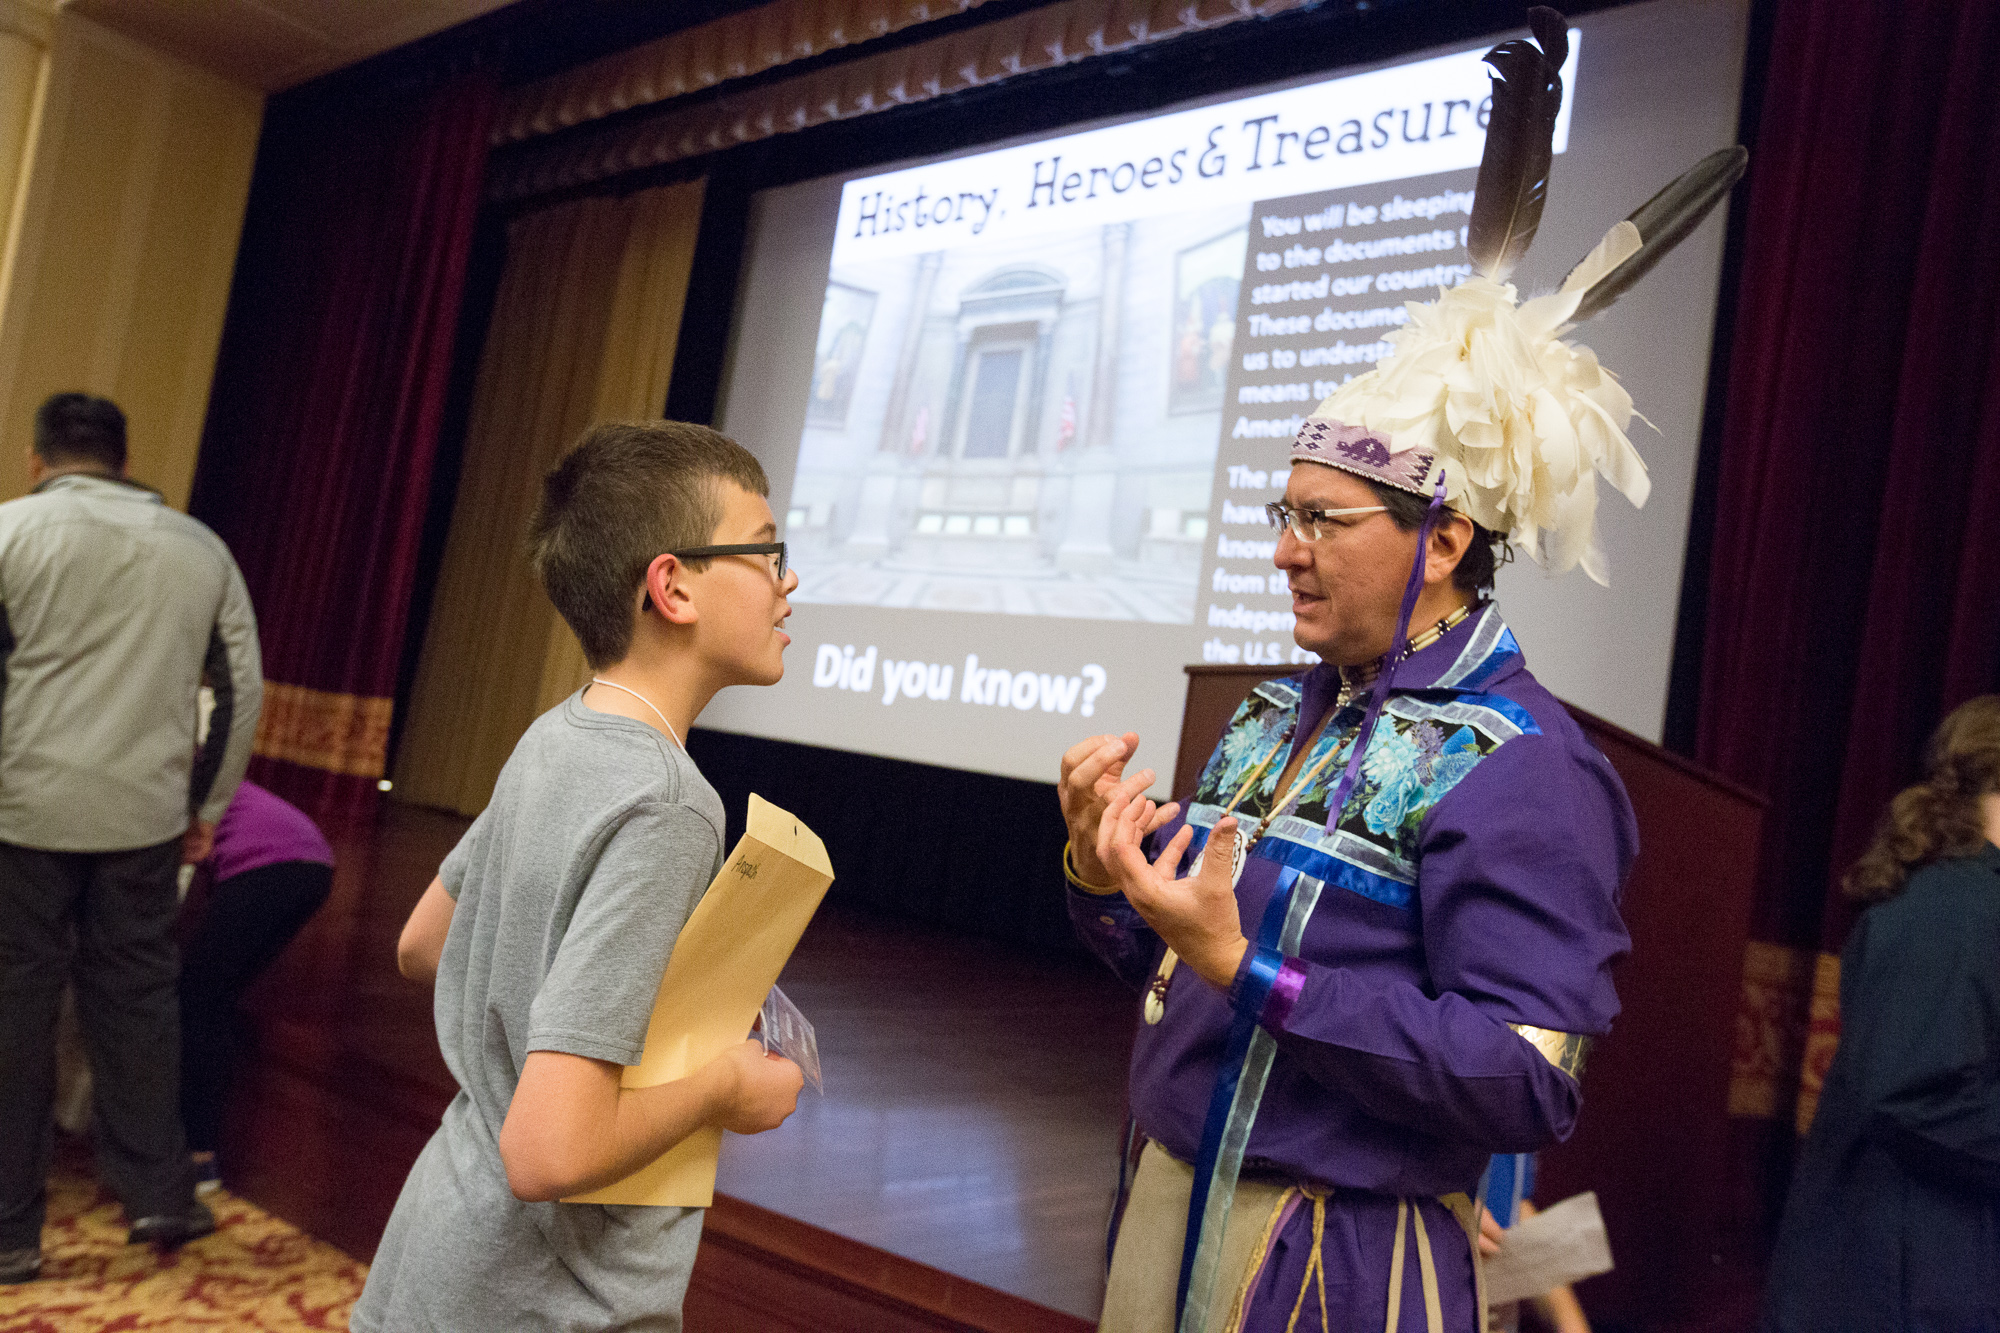 3d4a0f4ea Native American storyteller Perry Ground chats with a guest after his  storytelling presentation. (Photograph by Jeffrey Reed, National Archives)